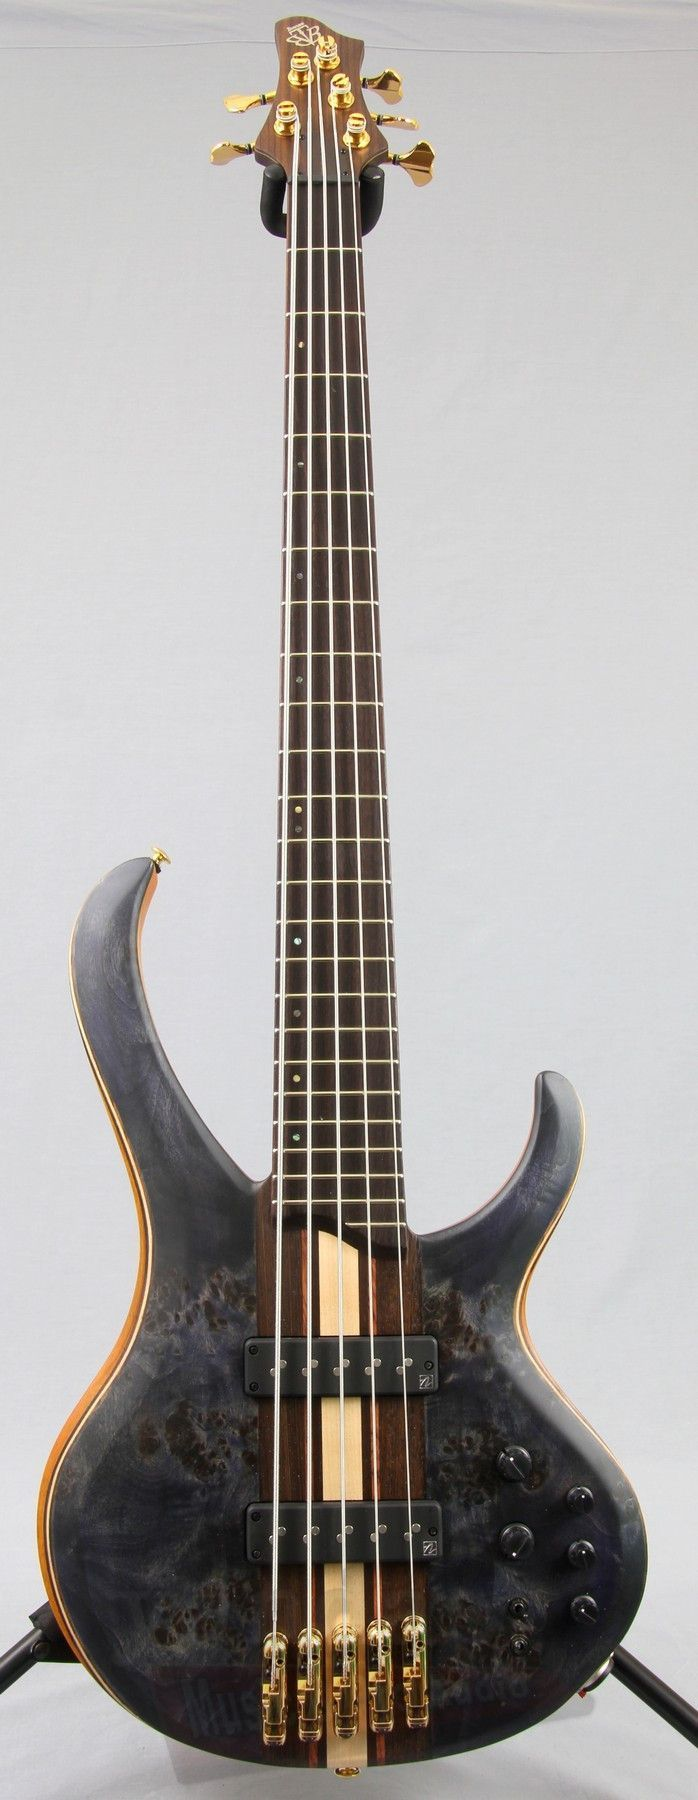 ibanez btb1605 premium 5 string bass guitar looking at this beauty the words custom and. Black Bedroom Furniture Sets. Home Design Ideas